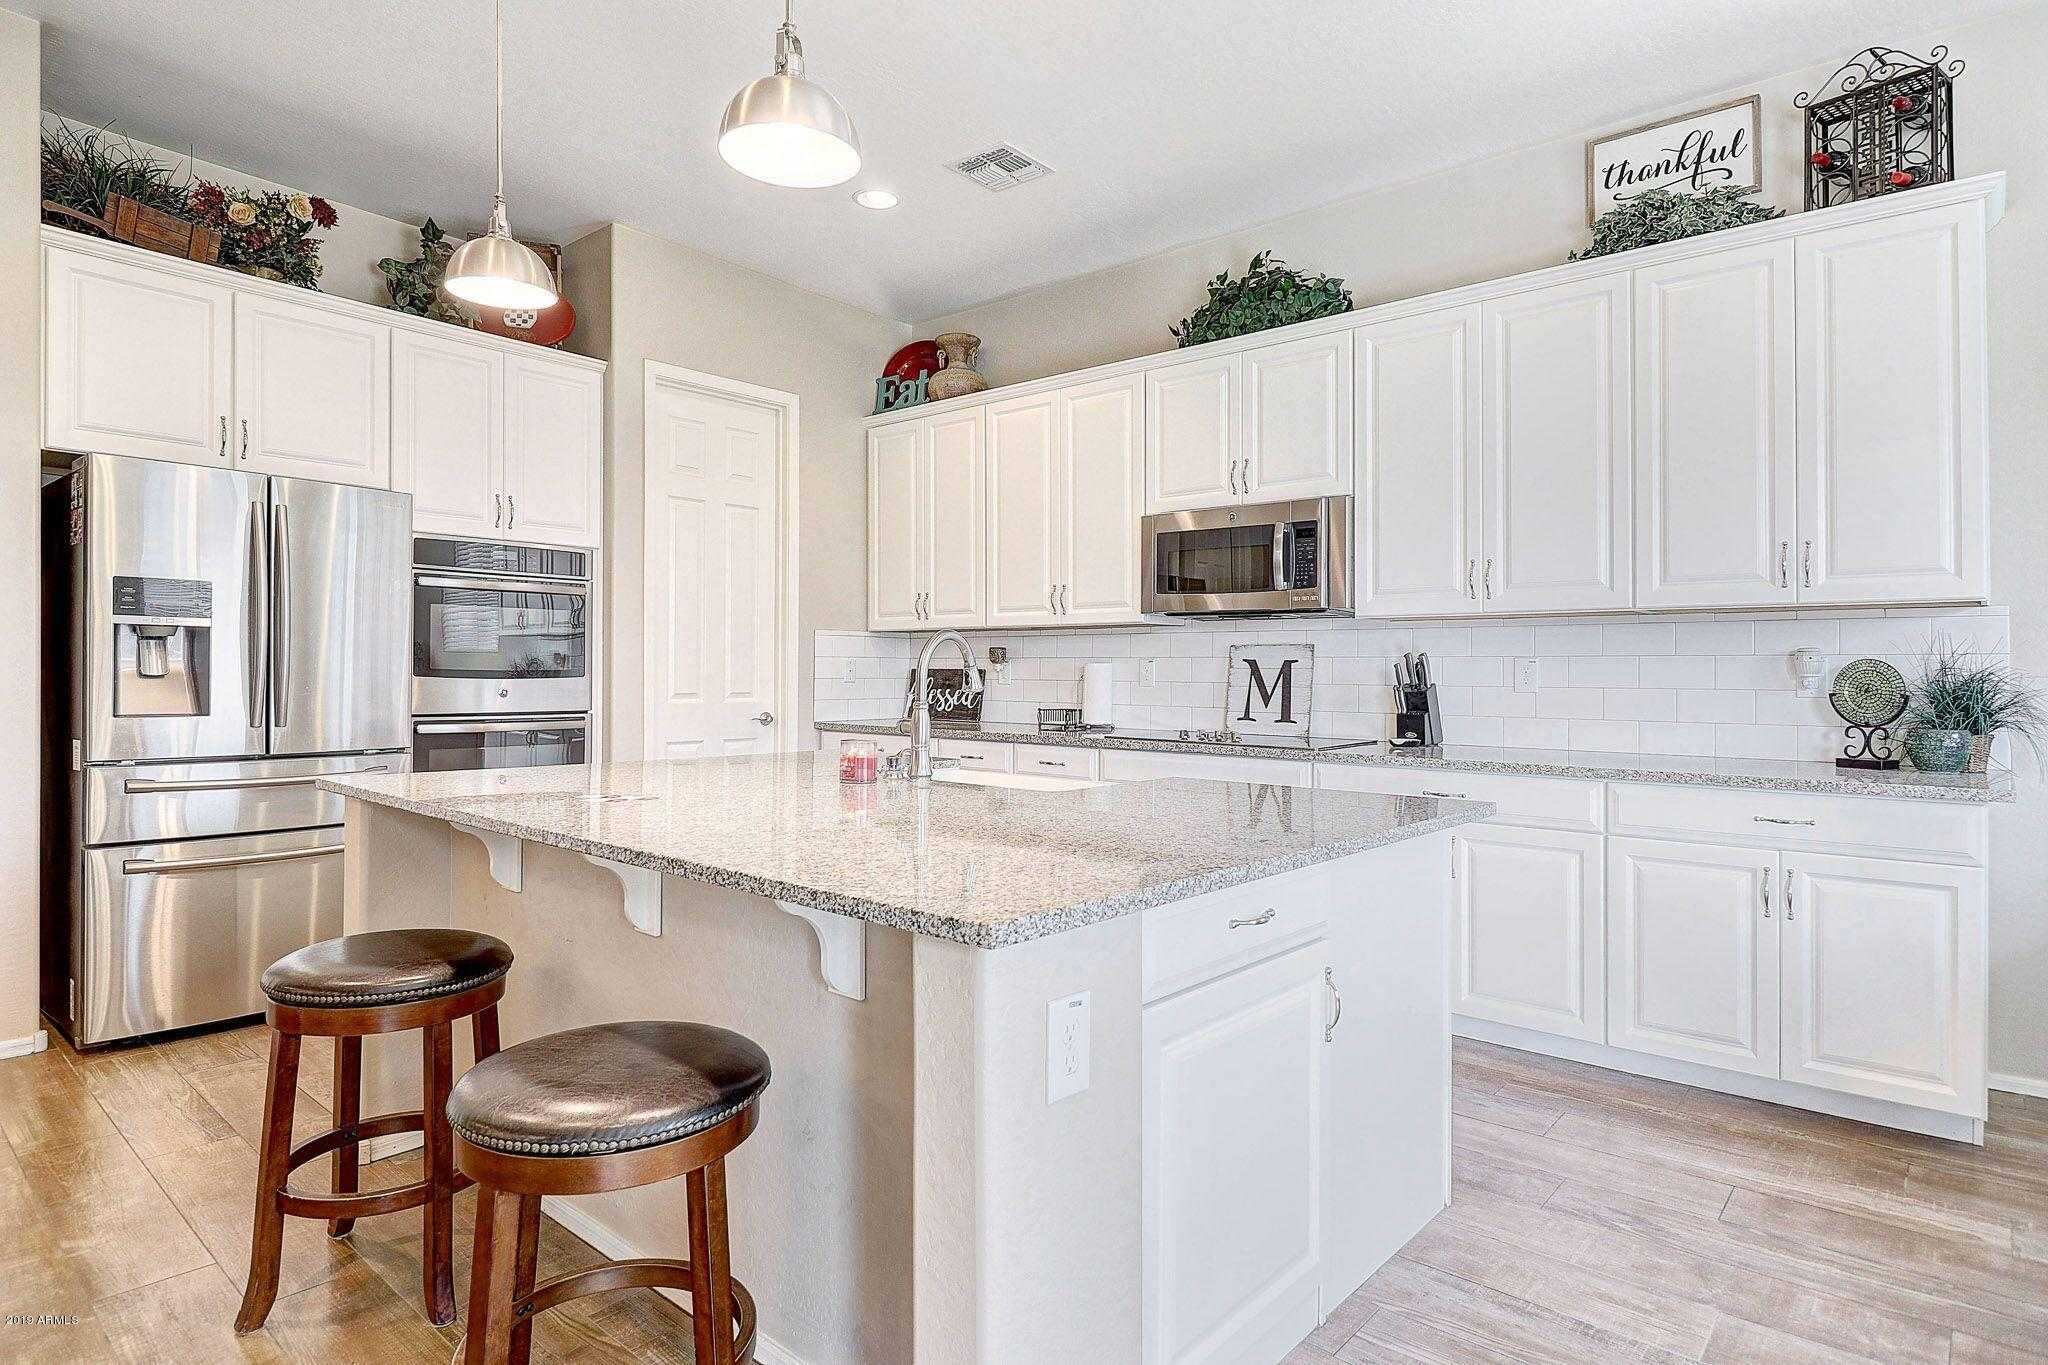 $400,000 - 3Br/3Ba - Home for Sale in Rock Springs, Peoria